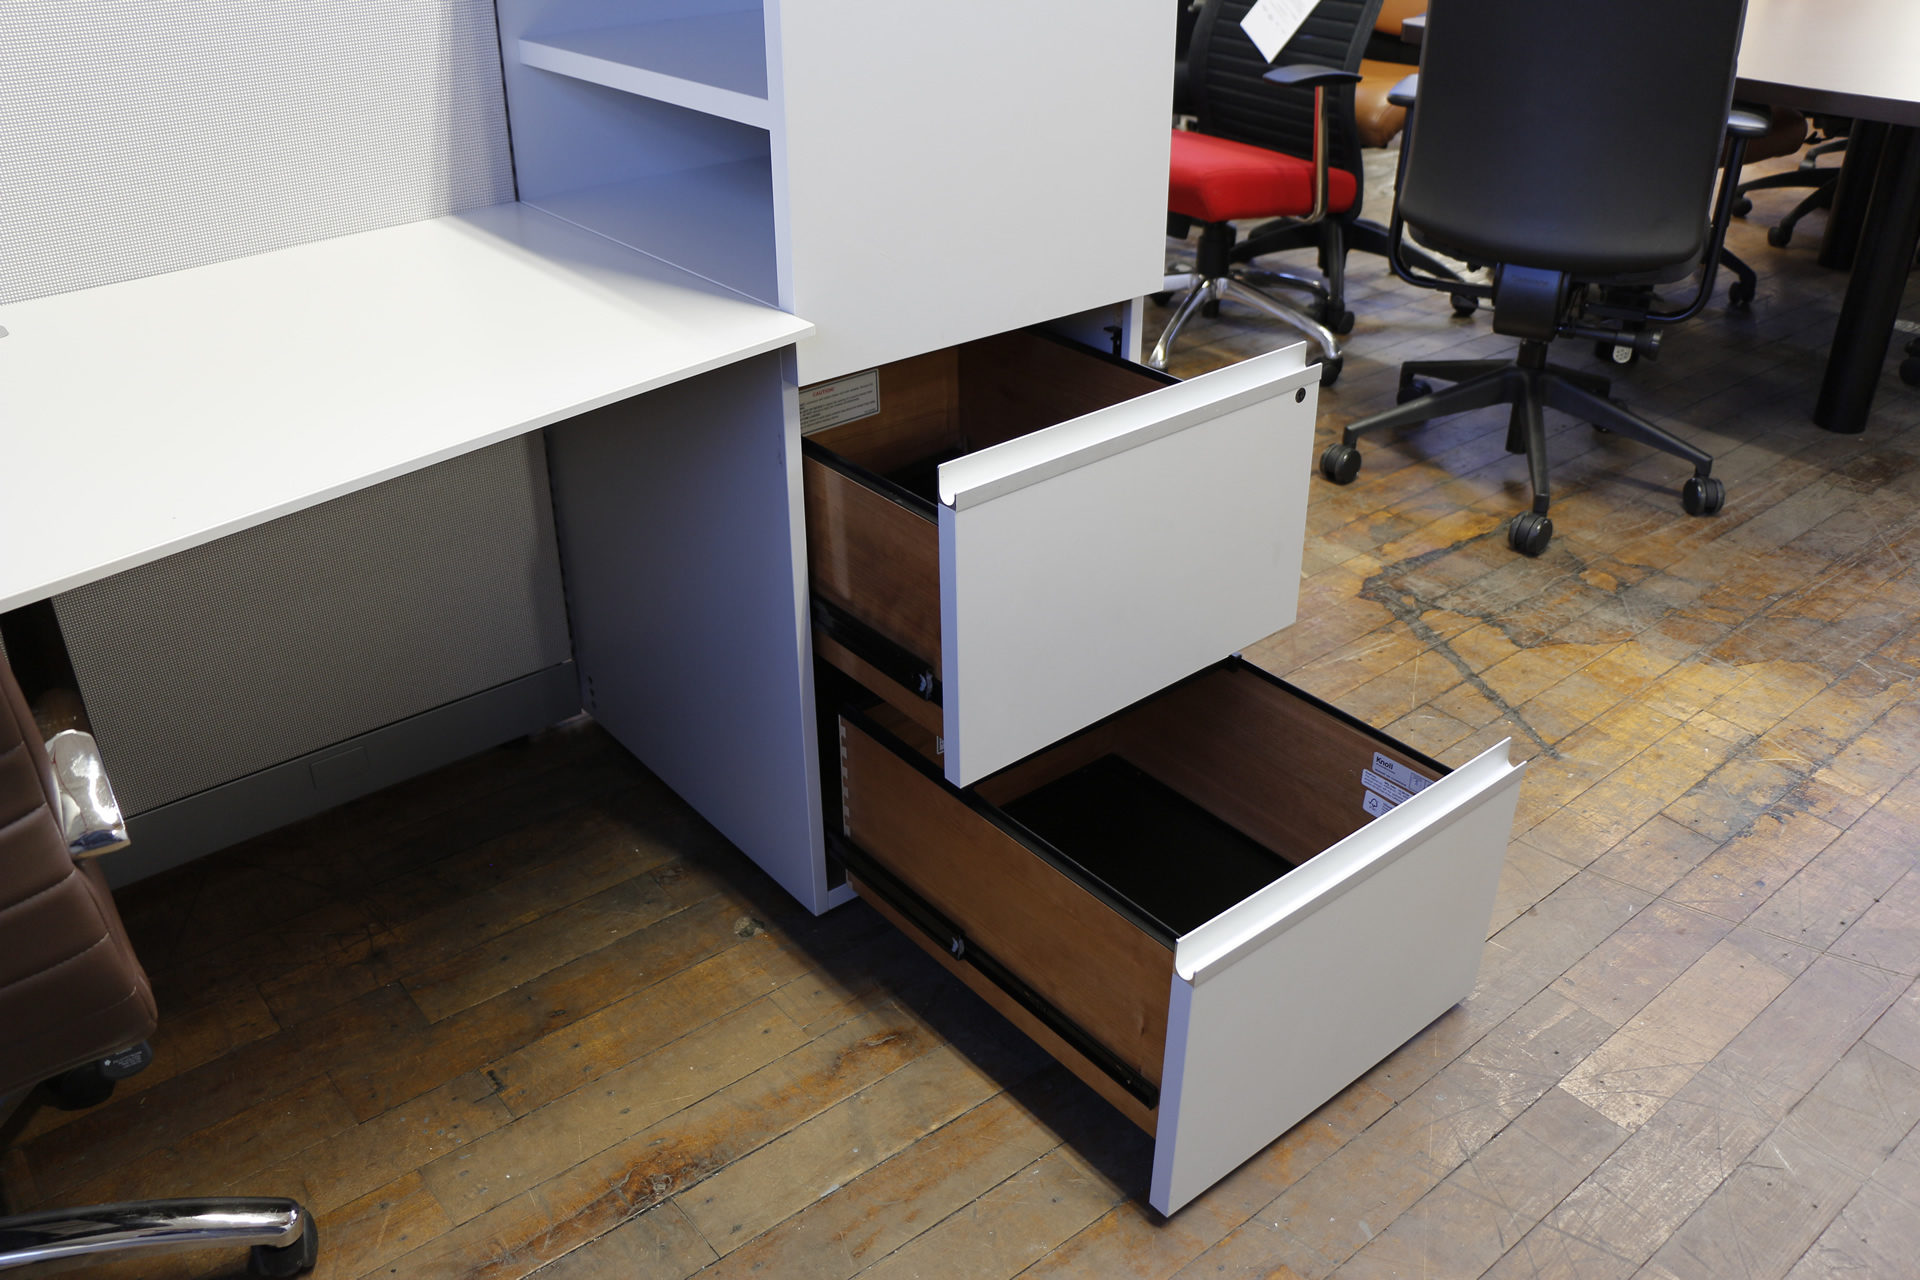 peartreeofficefurniture_peartreeofficefurniture_mg_4958.jpg